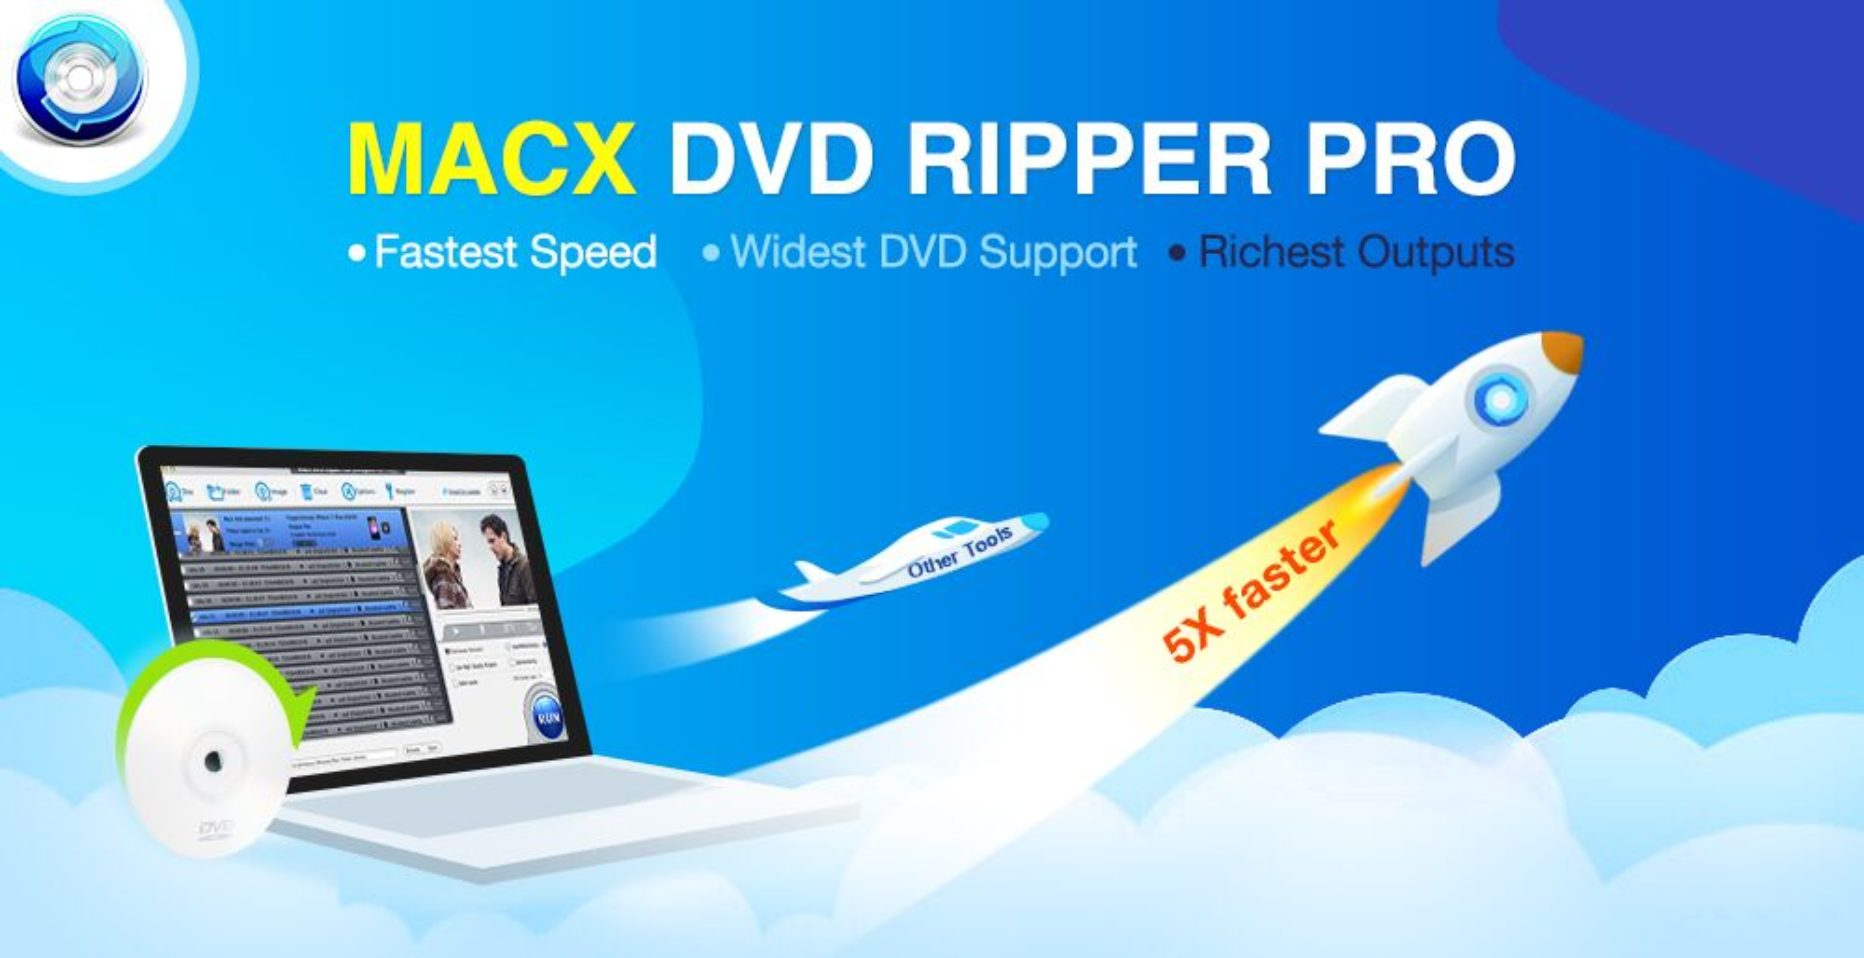 MacX DVD Ripper Pro – Save Favorite DVDs for Viewing, Anytime!